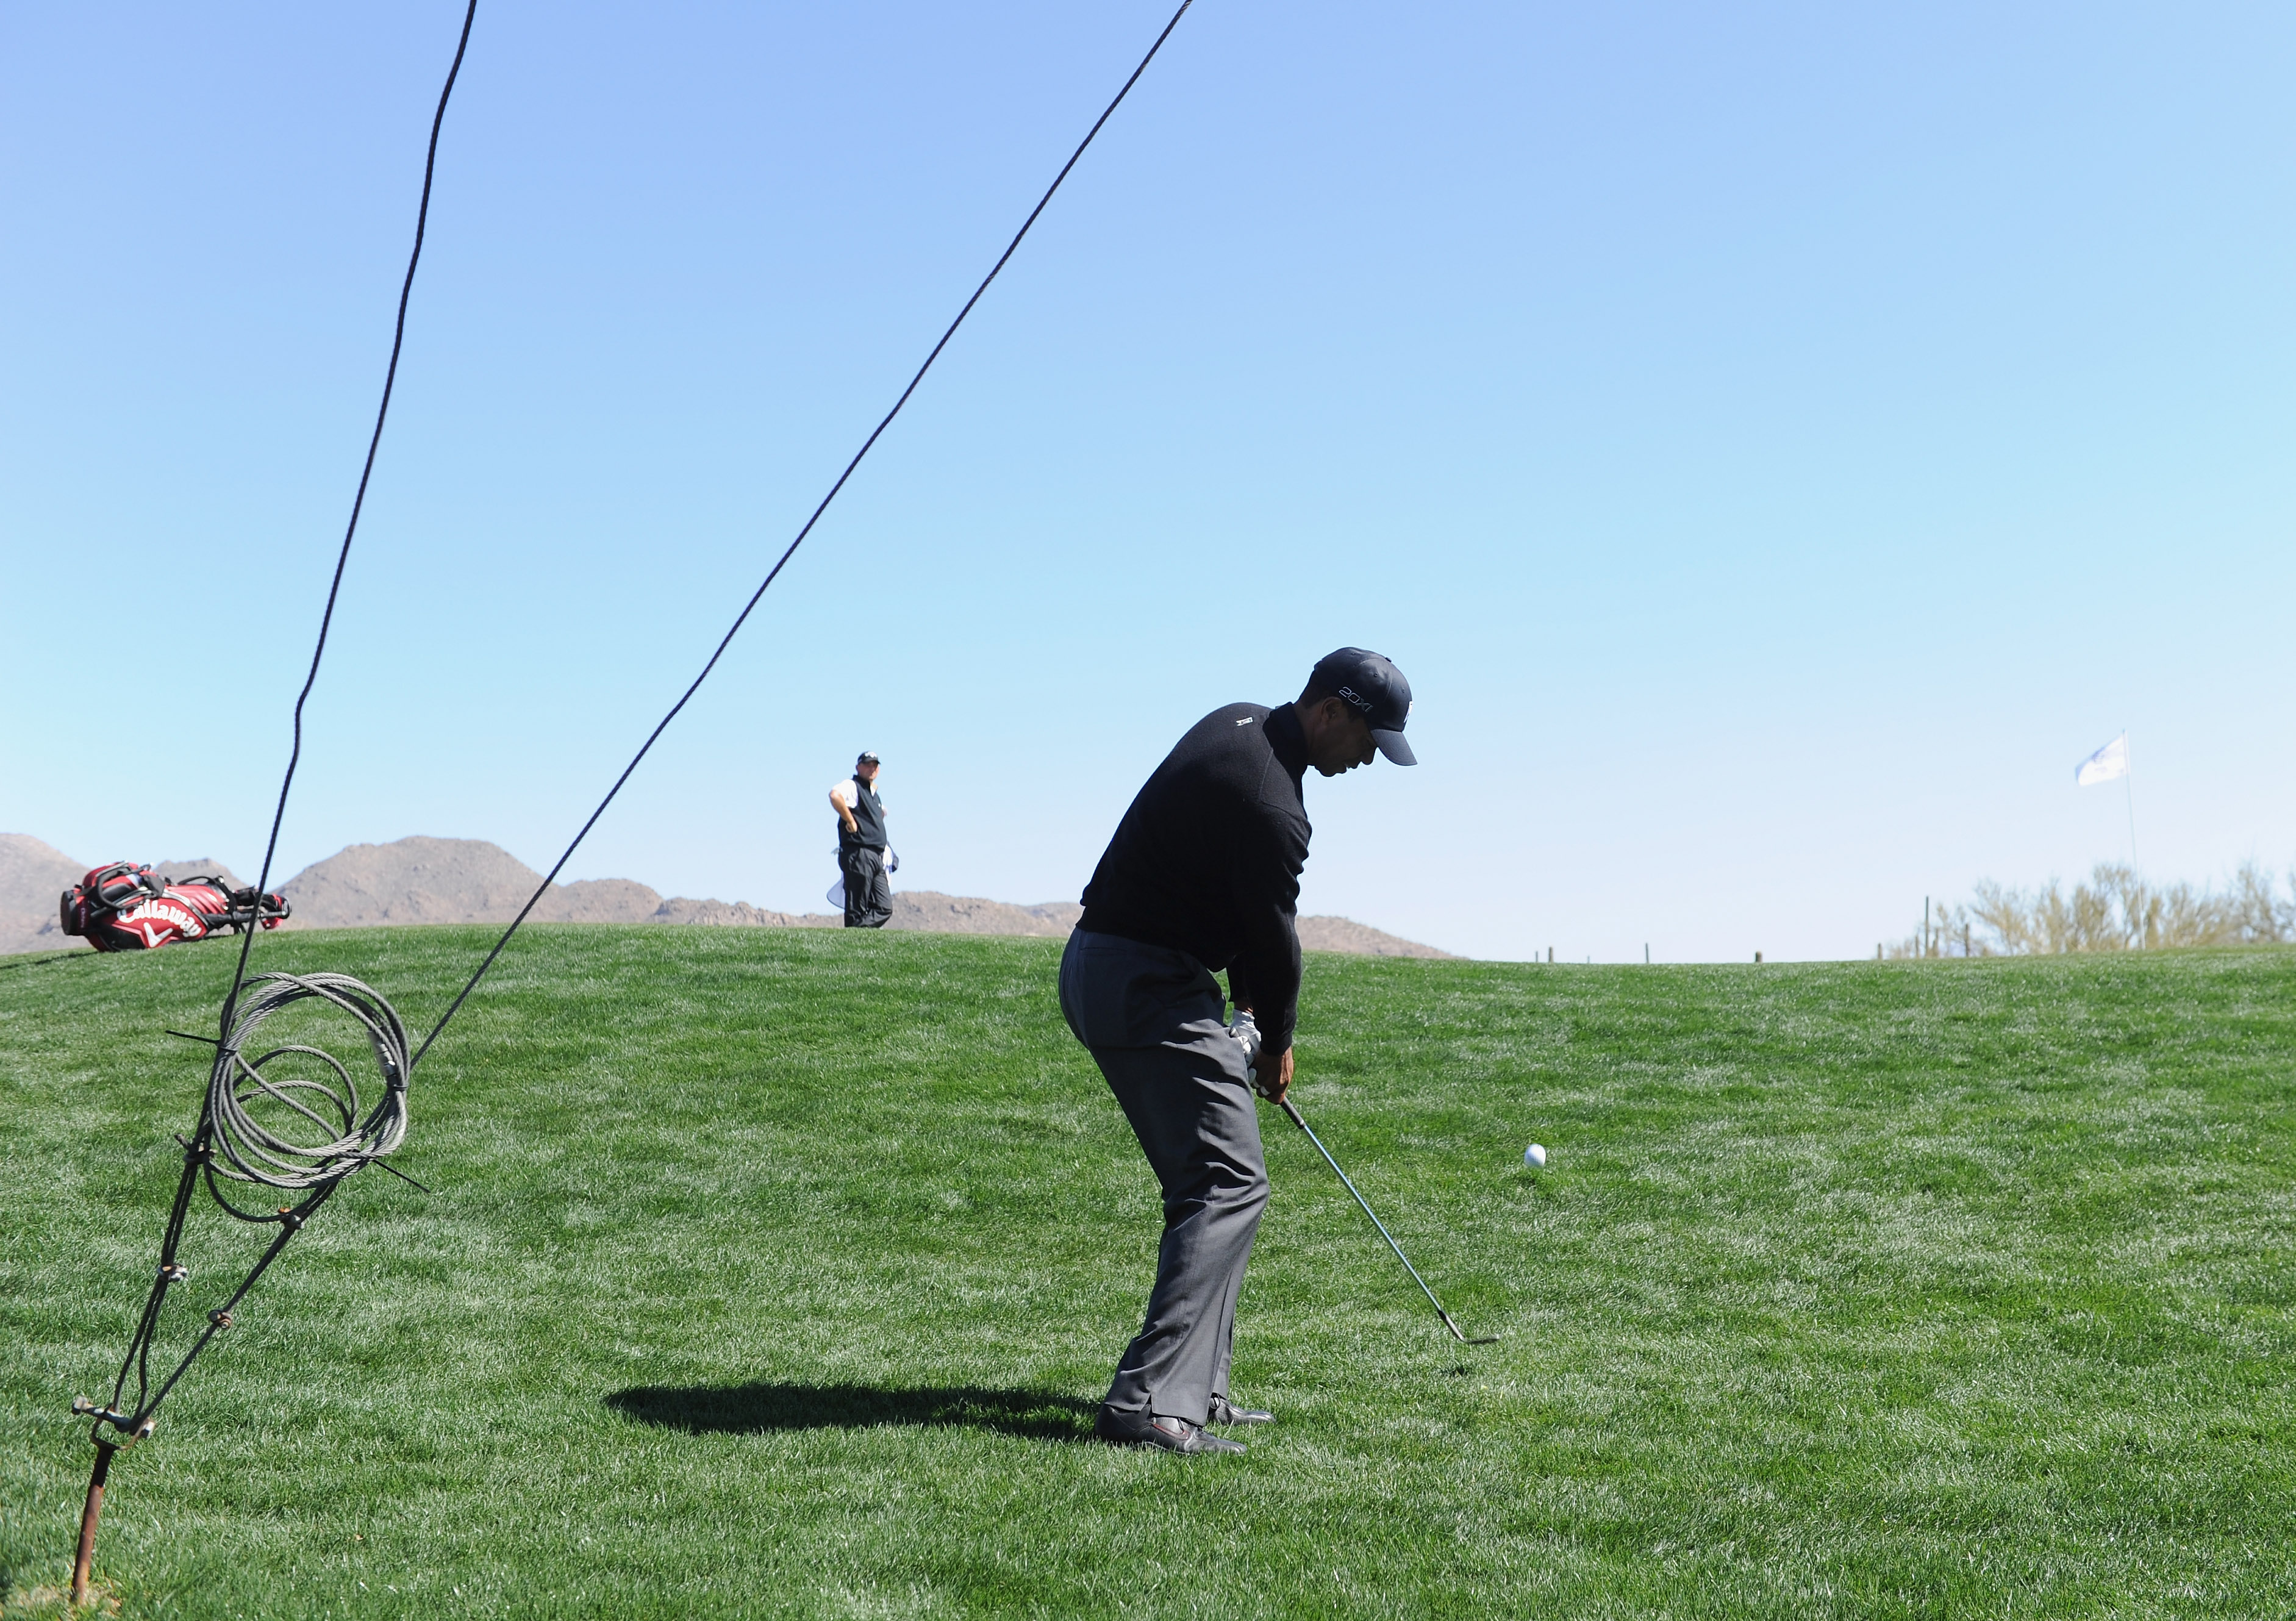 MARANA, AZ - FEBRUARY 23:  Tiger Woods plays his chip shot on the first hole during the first round of the World Golf Championships-Accenture Match Play Championship held at The Ritz-Carlton Golf Club, Dove Mountain on February 23, 2011 in Marana, Arizona